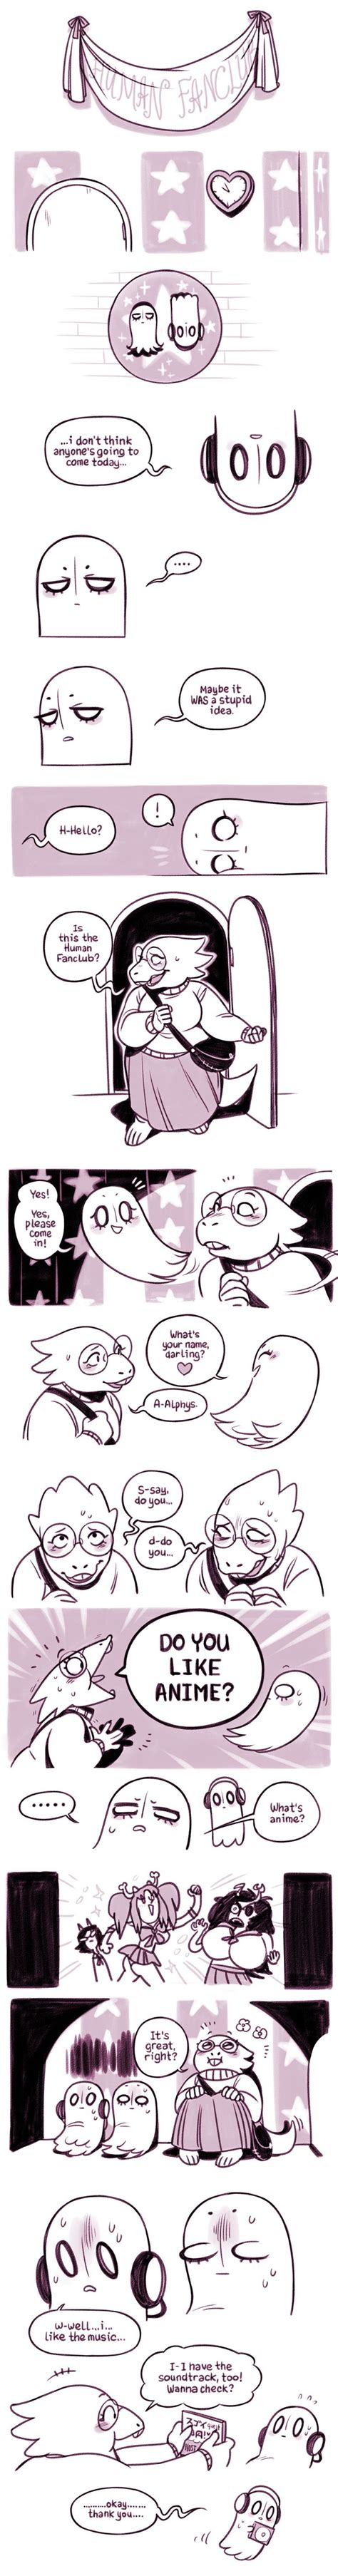 227 best images about undertale on living